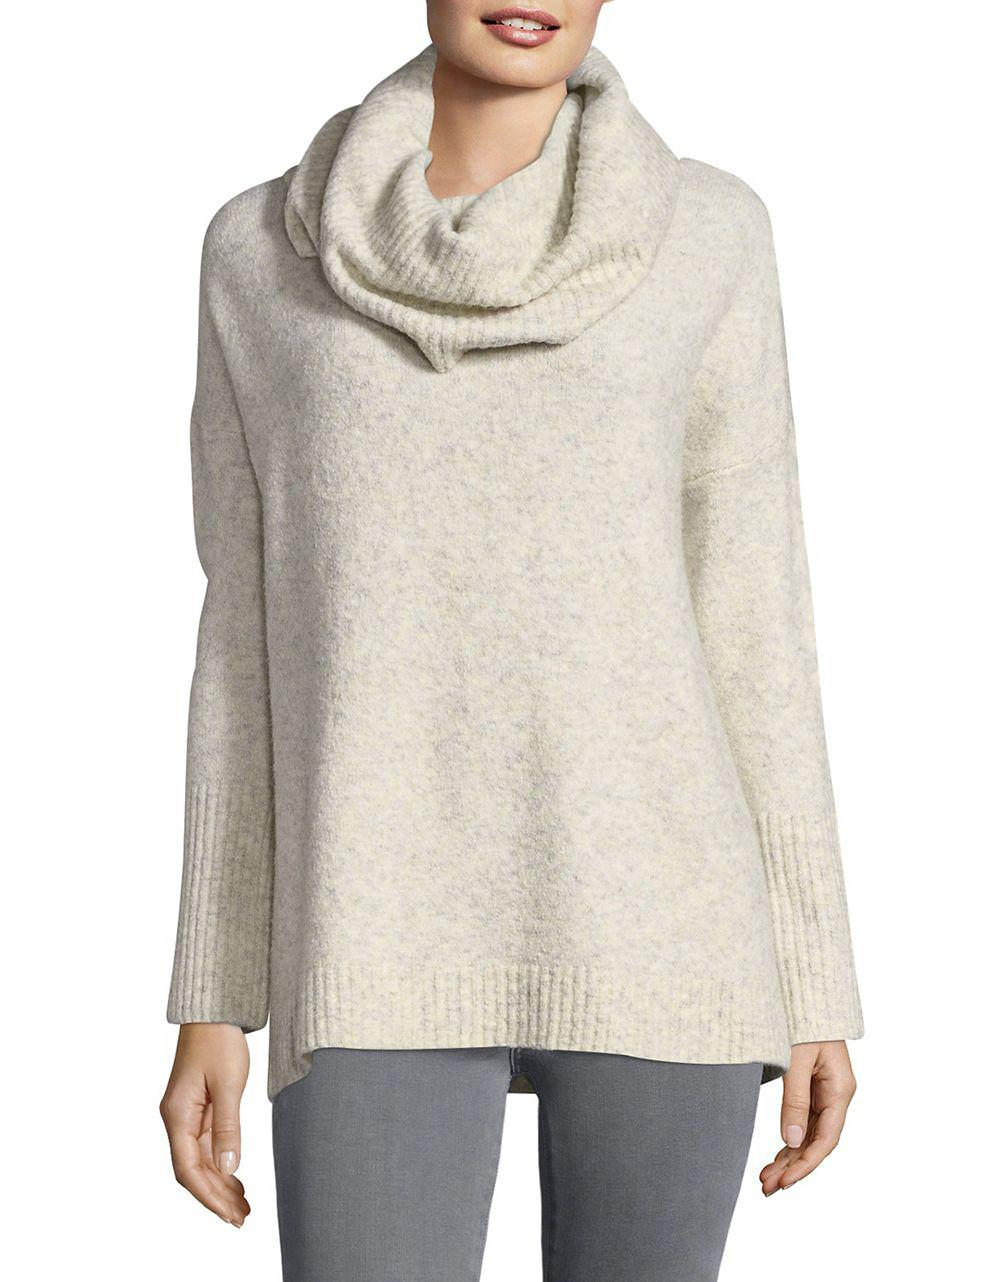 French connection Textured Cowlneck Sweater | Lyst